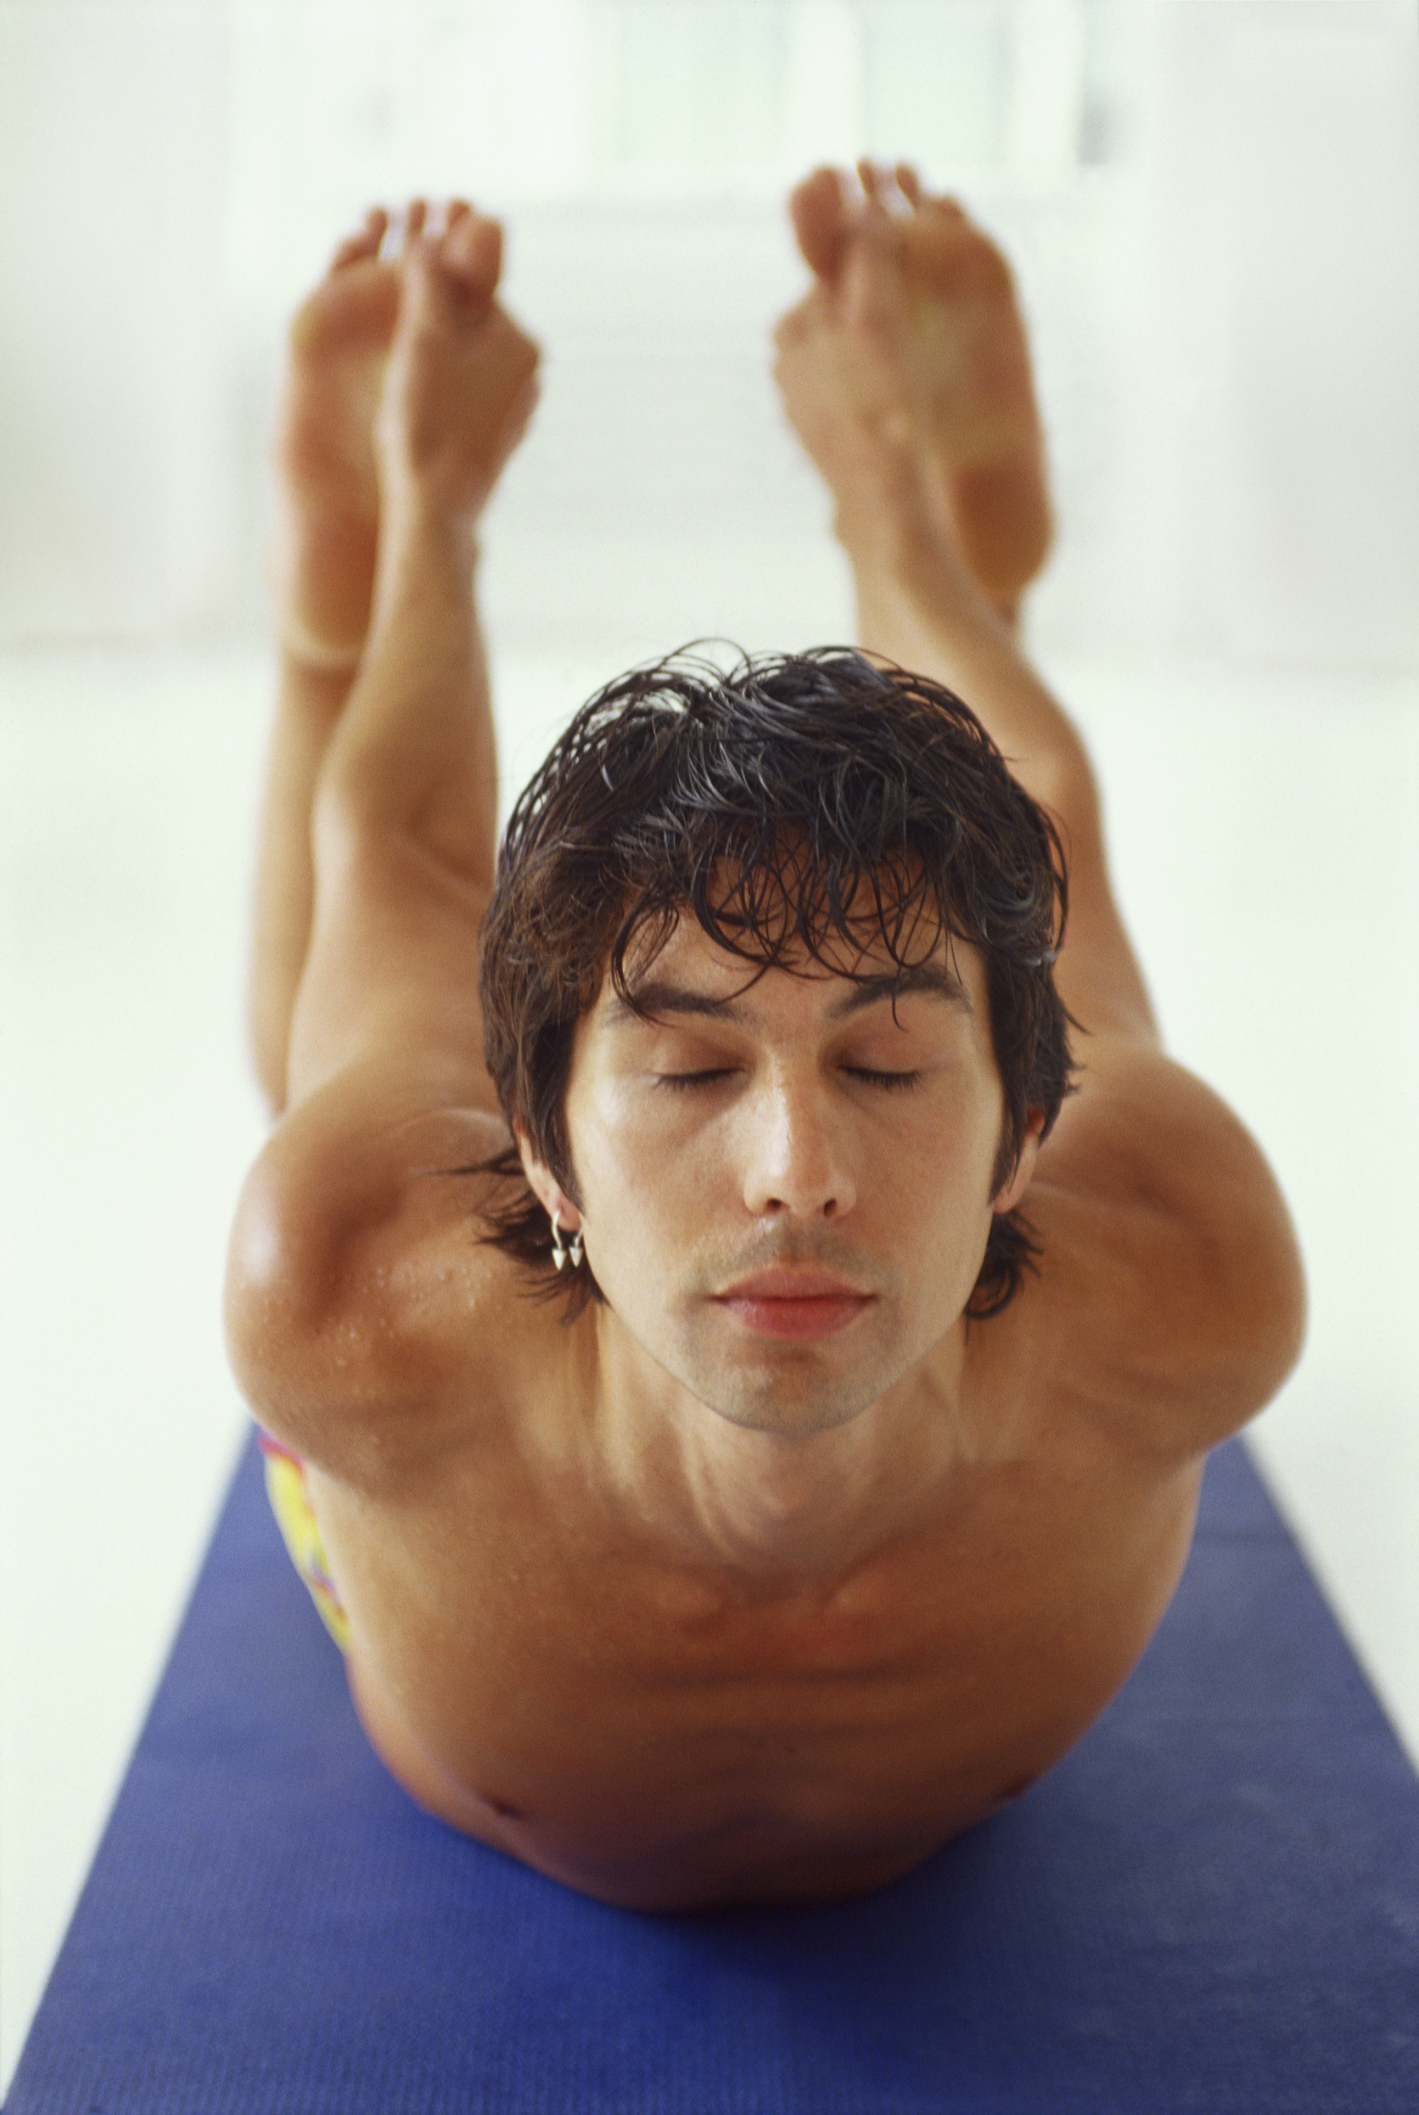 Calories burned during bikram yoga | healthy living.